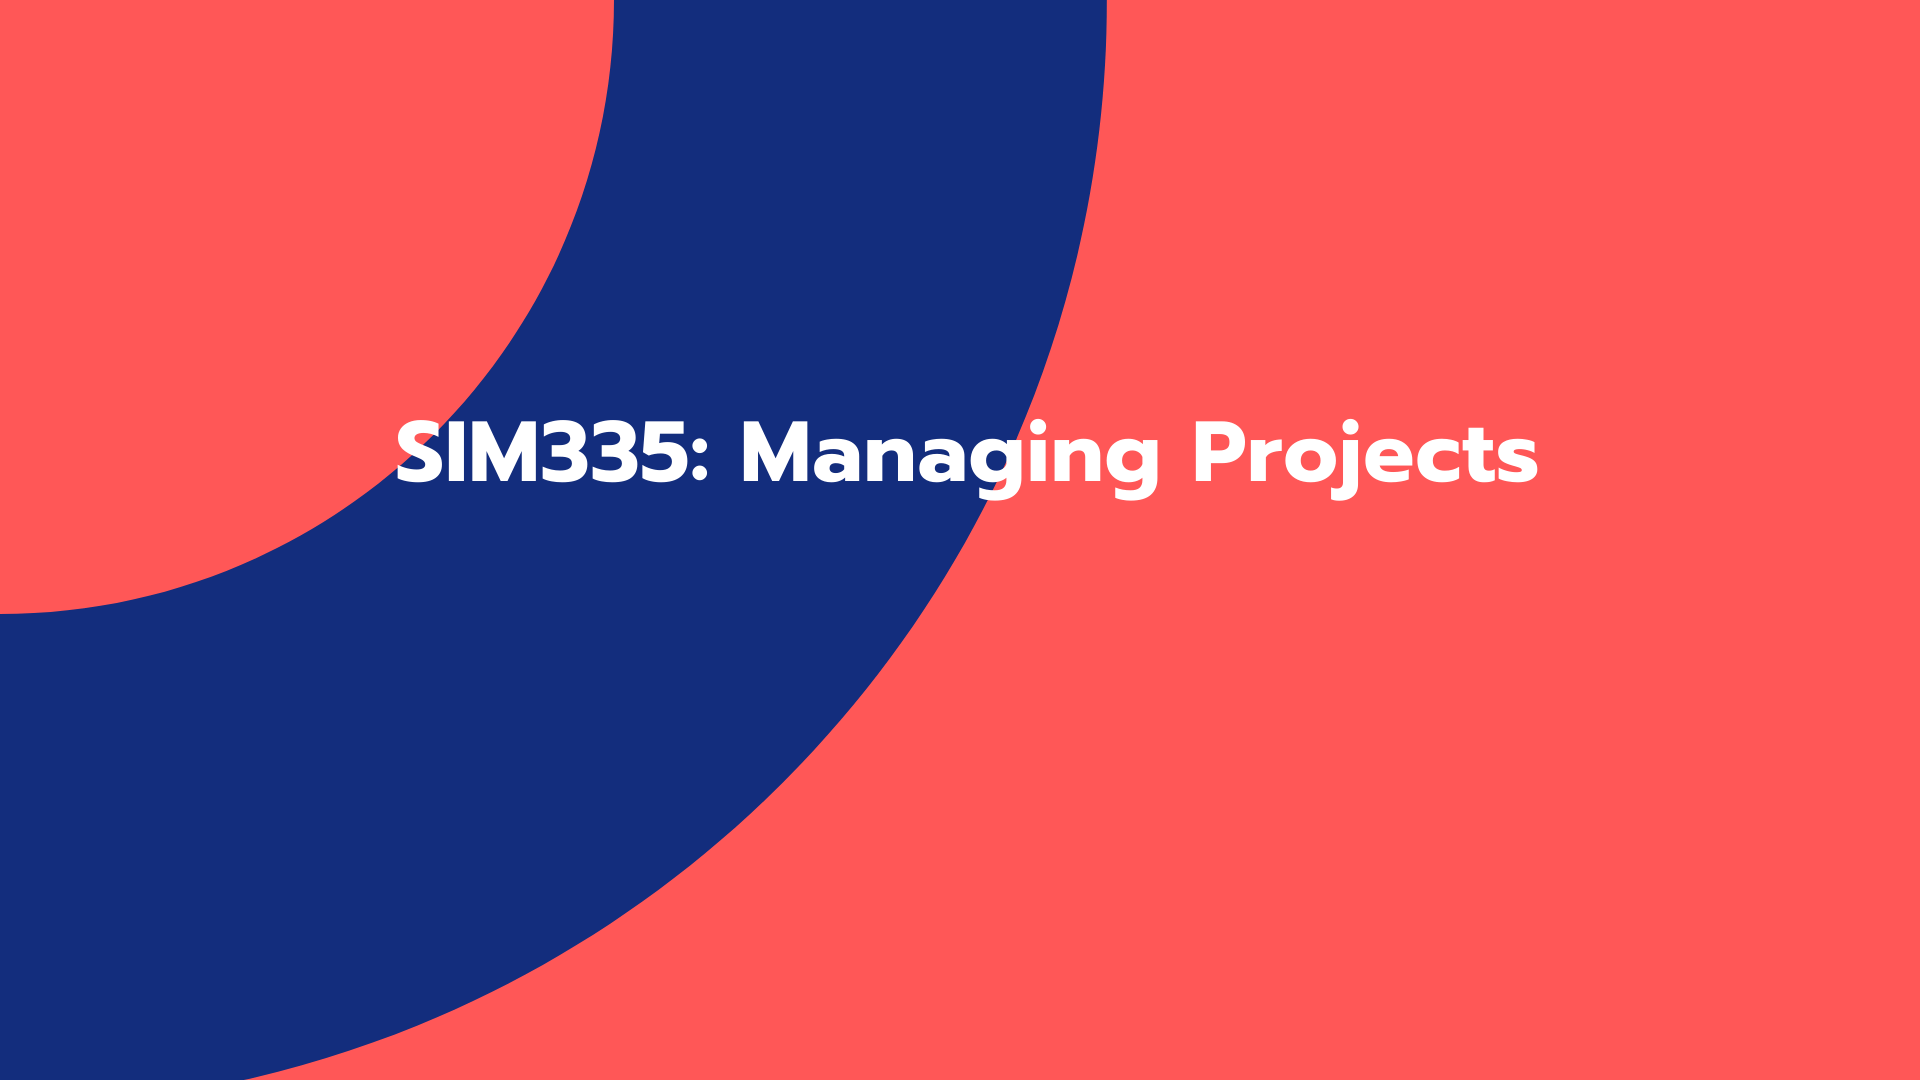 SIM335: Managing Projects